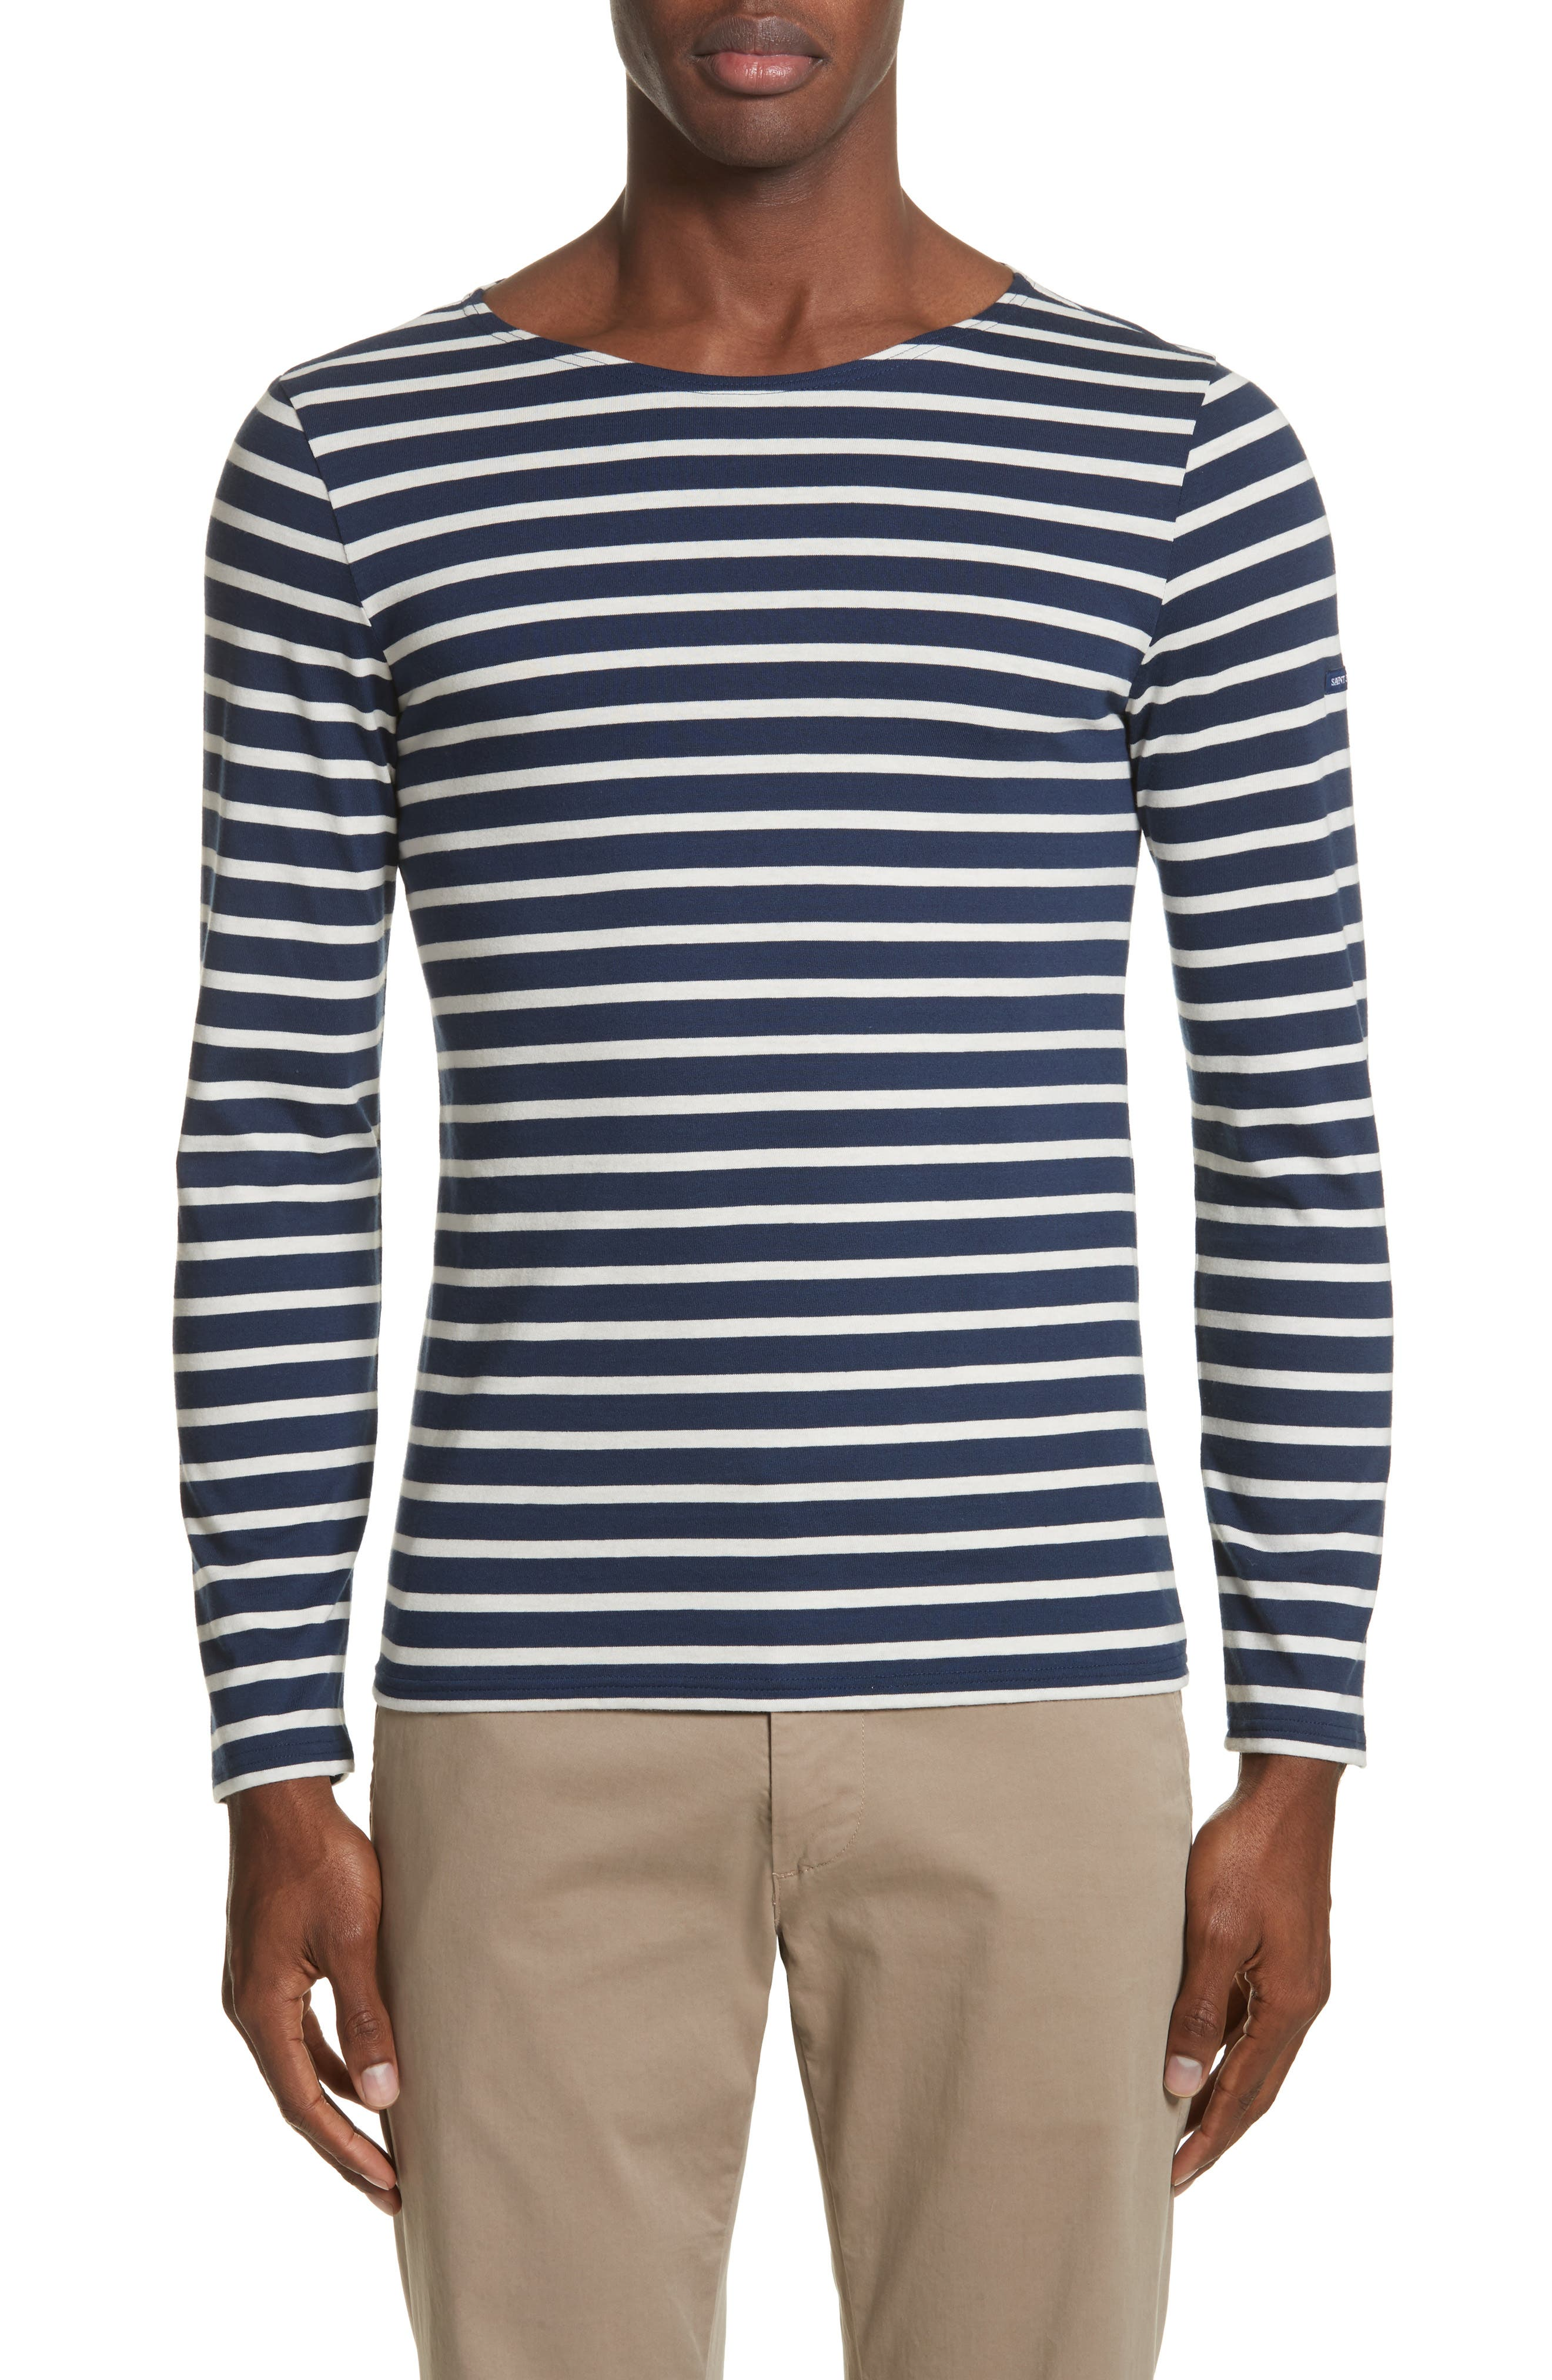 Minquiers Moderne Striped Sailor Shirt,                             Alternate thumbnail 7, color,                             Navy/ Off White